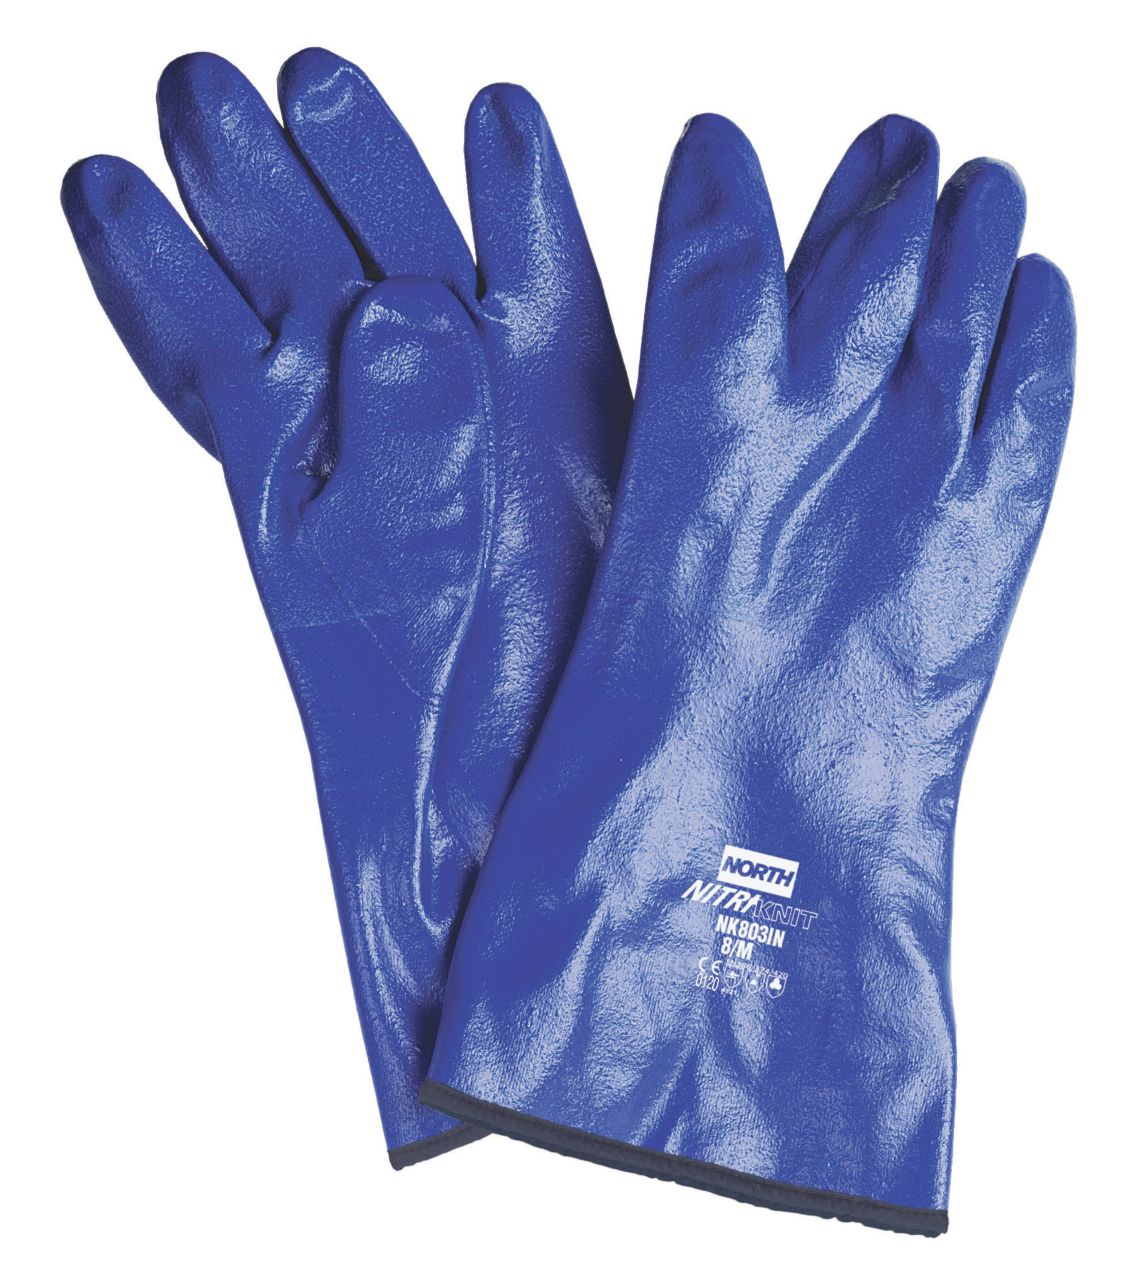 Nitri-Knit™ - Supported Nitrile Gloves - NK803IN_1